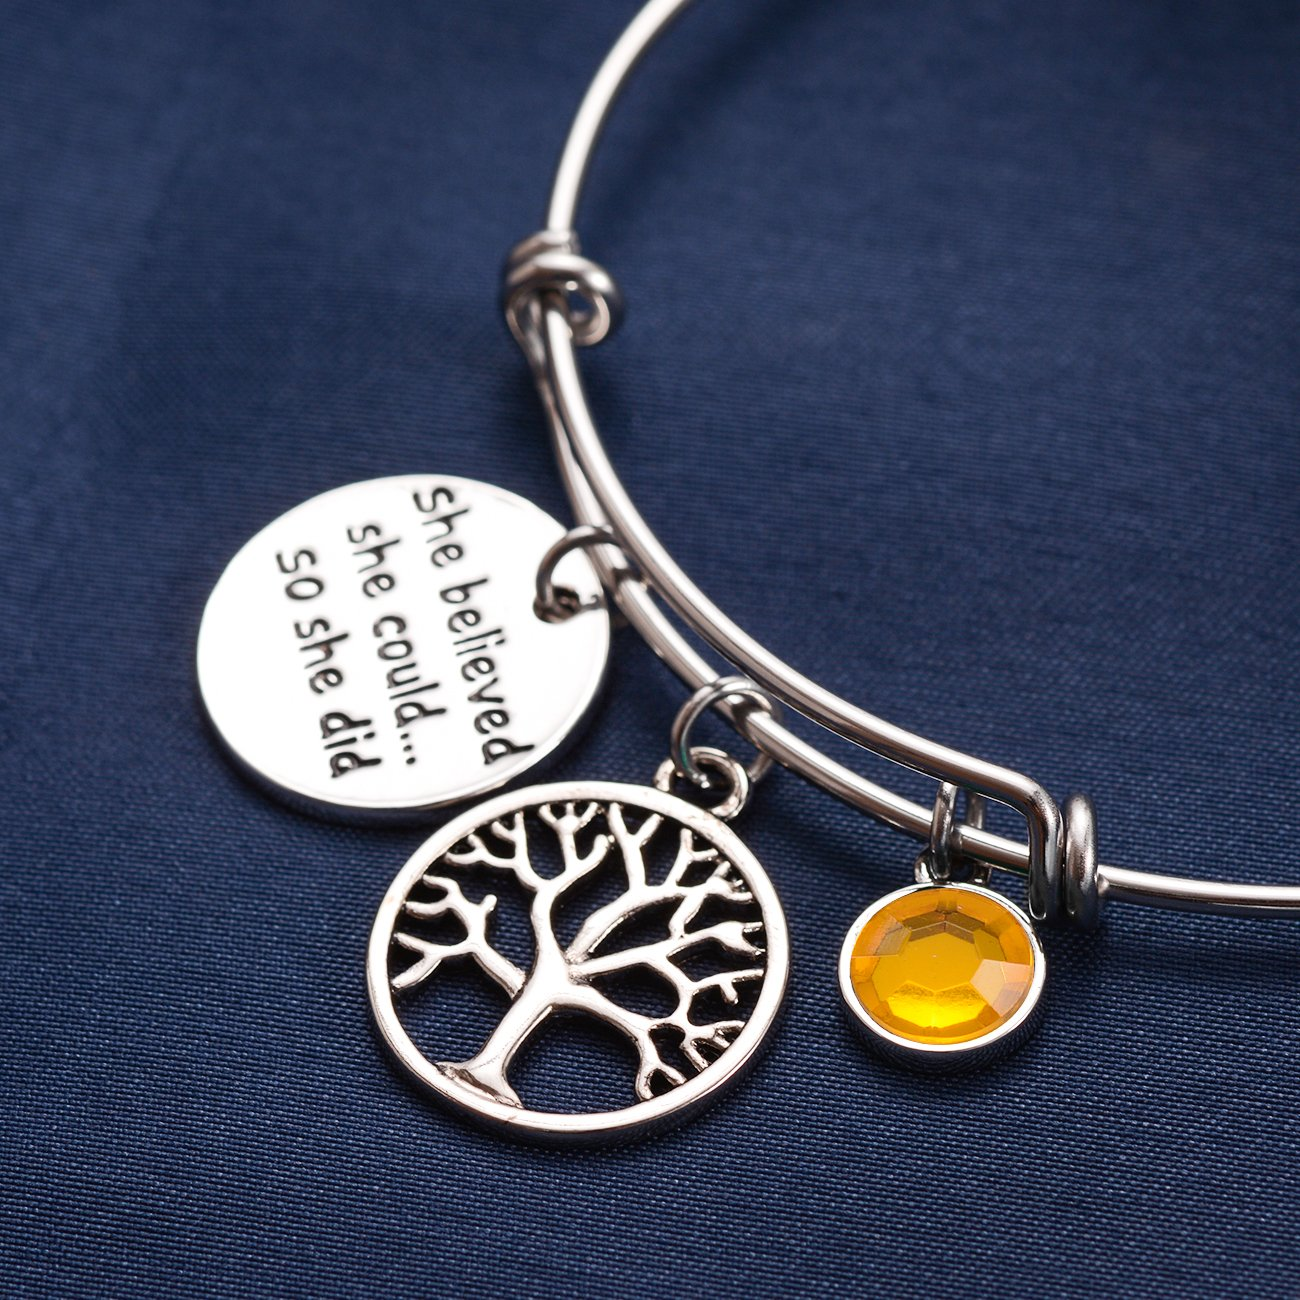 UNGENT THEM Birthstone Bracelet She Believed She Could So She Did Bracelet Tree of Life Expandable Bangle,for Women Teen Girl Inspirational Jewelry Birthday Gifts